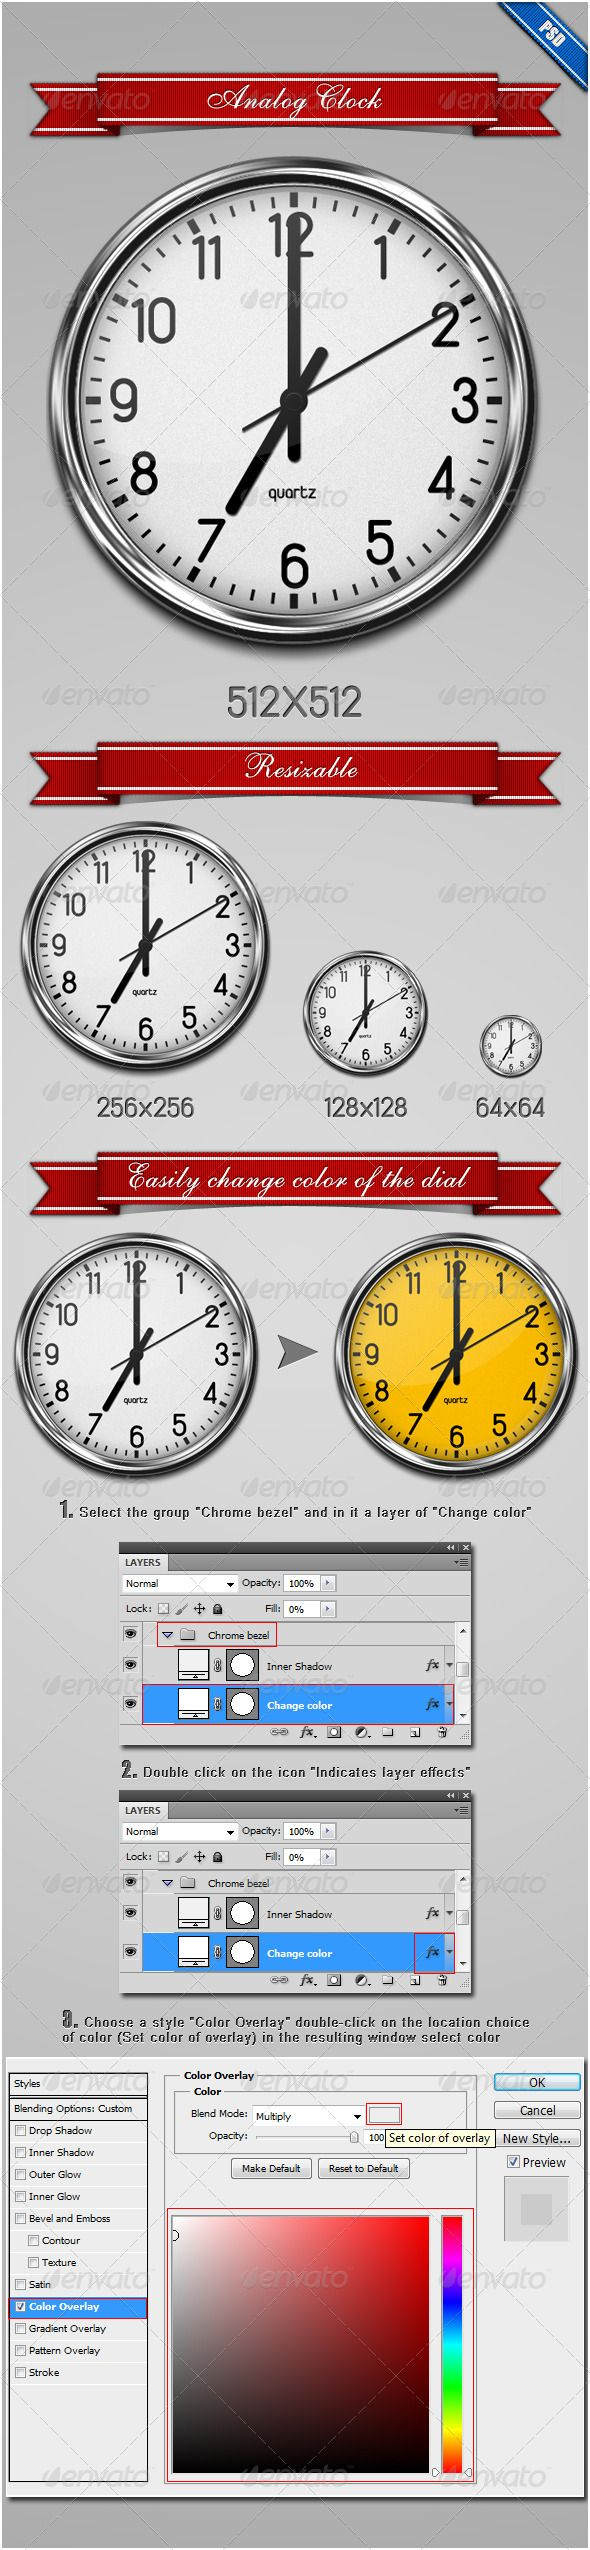 Analog Clock — Photoshop PSD #white #icon • Download here → https://graphicriver.net/item/analog-clock/235169?ref=pxcr